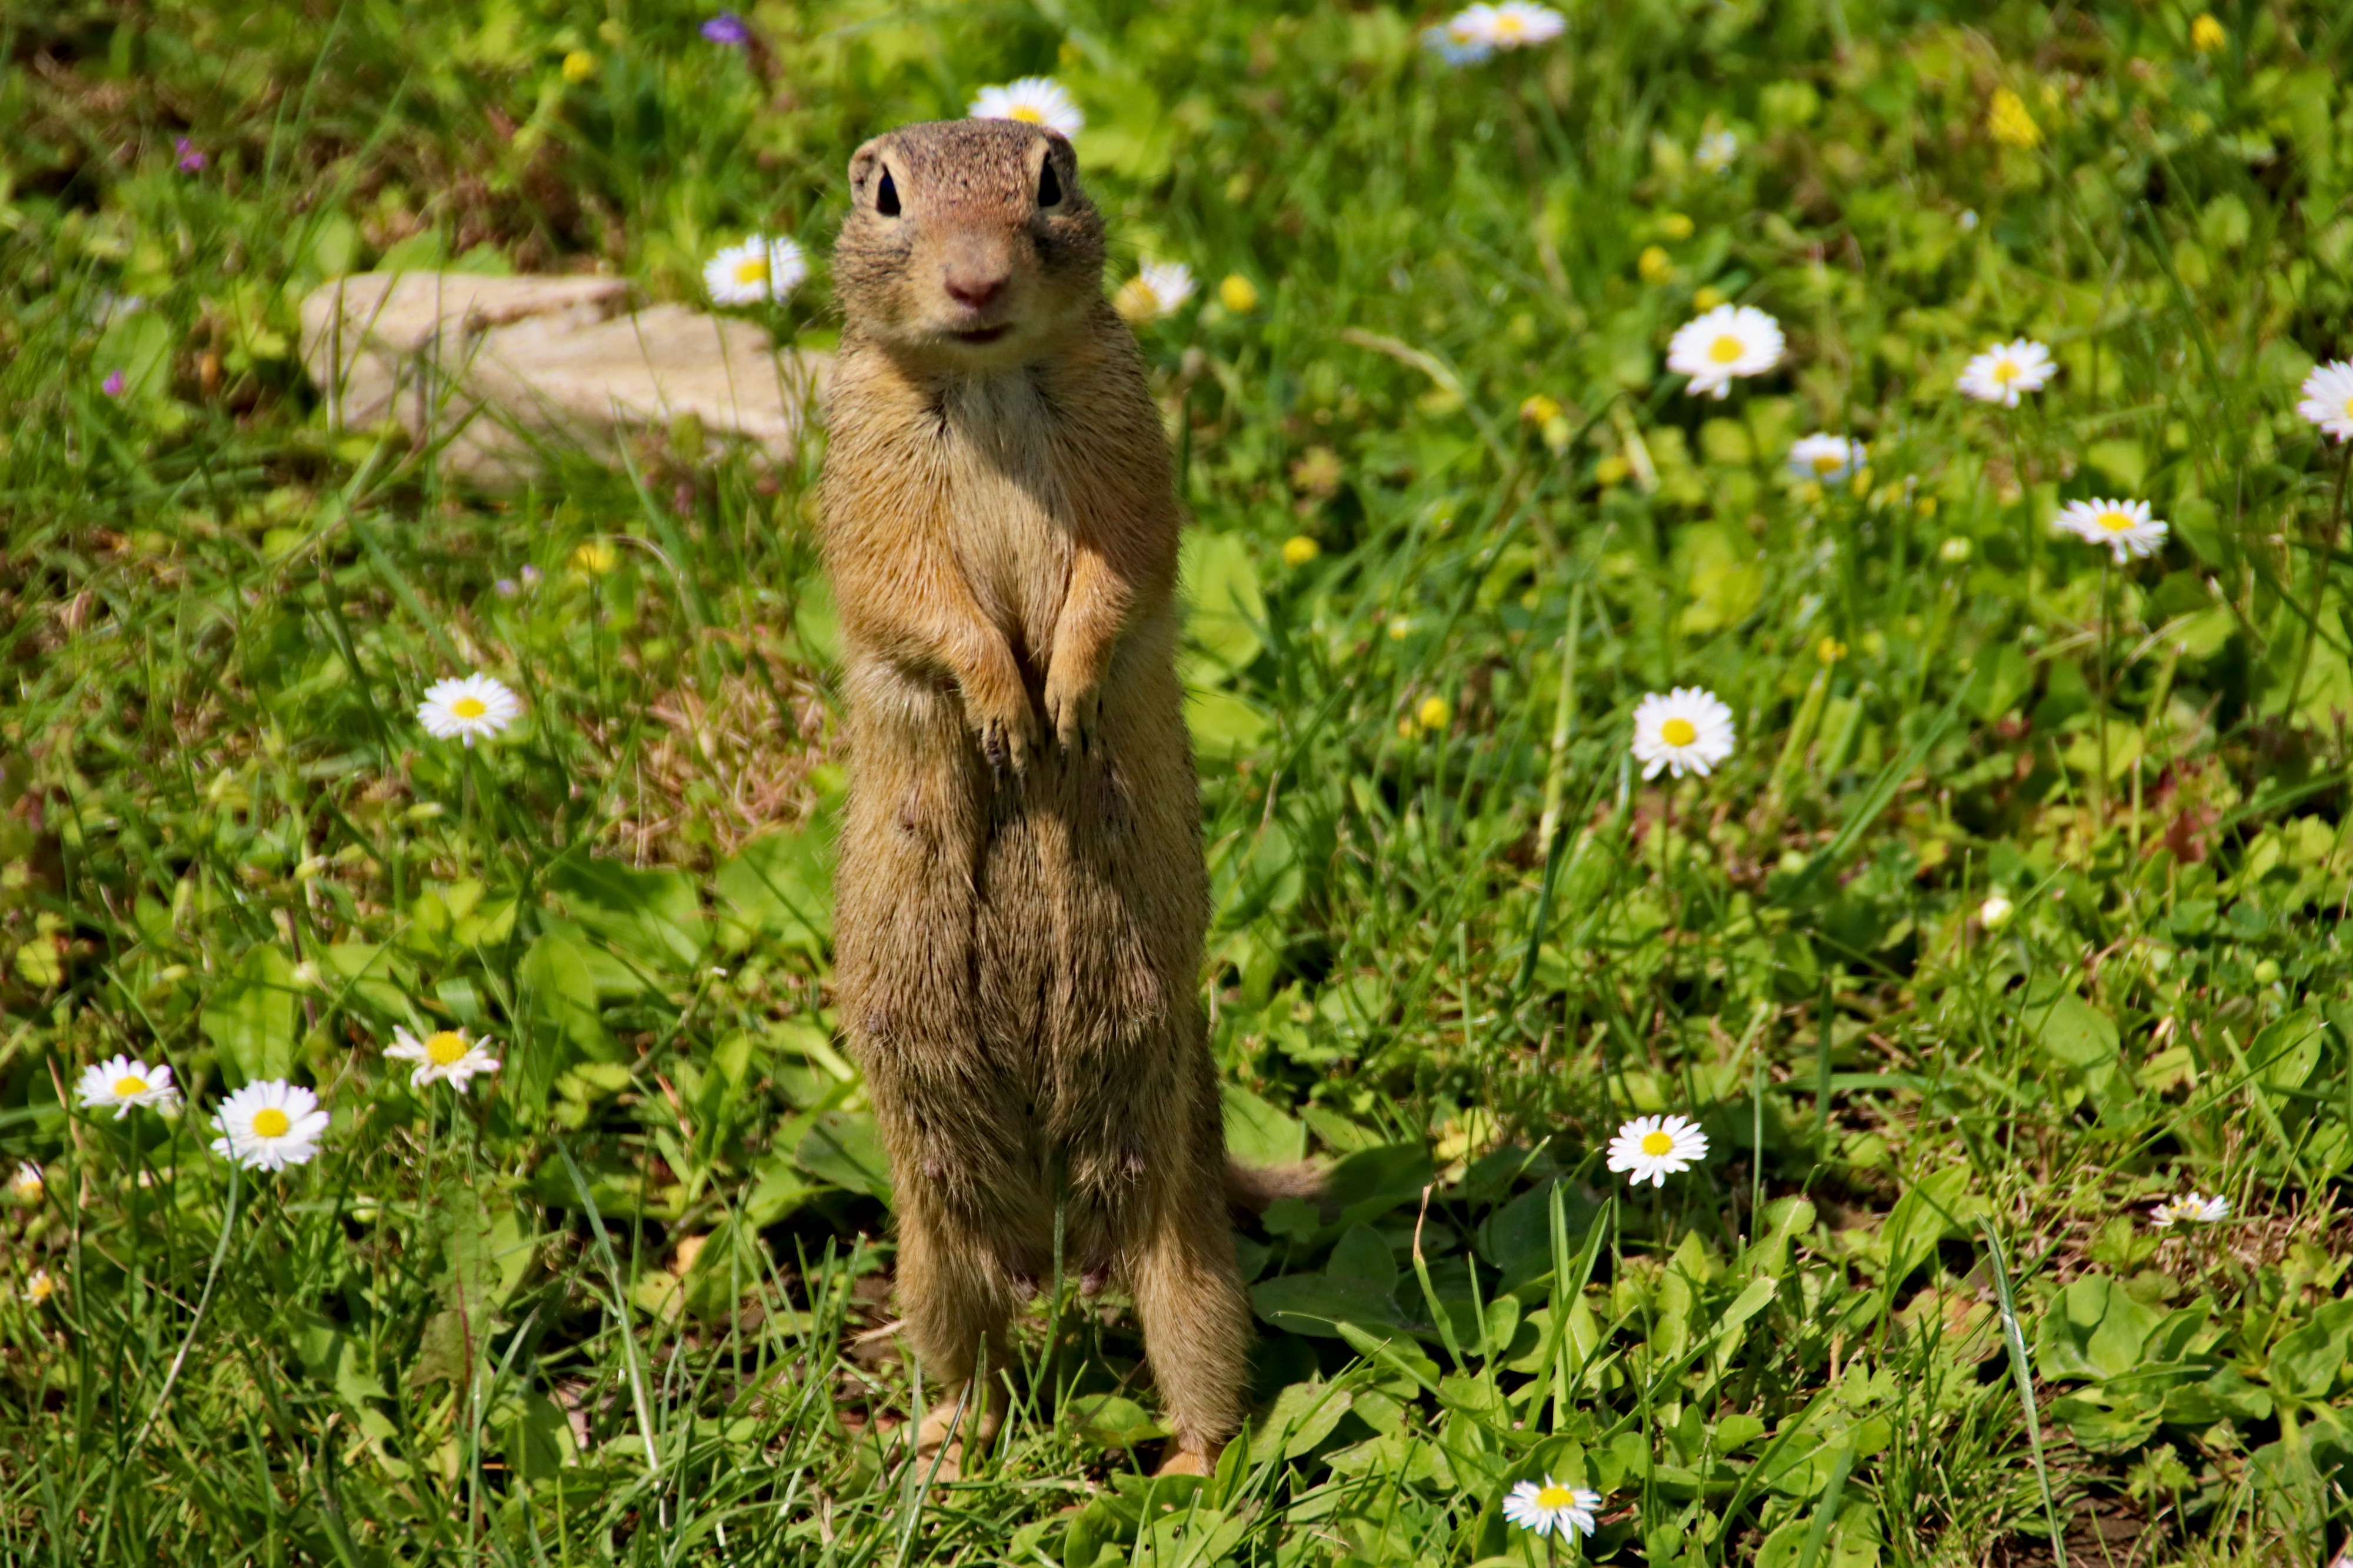 European Ground Squirrel standing up and looking curious in a field of daisies